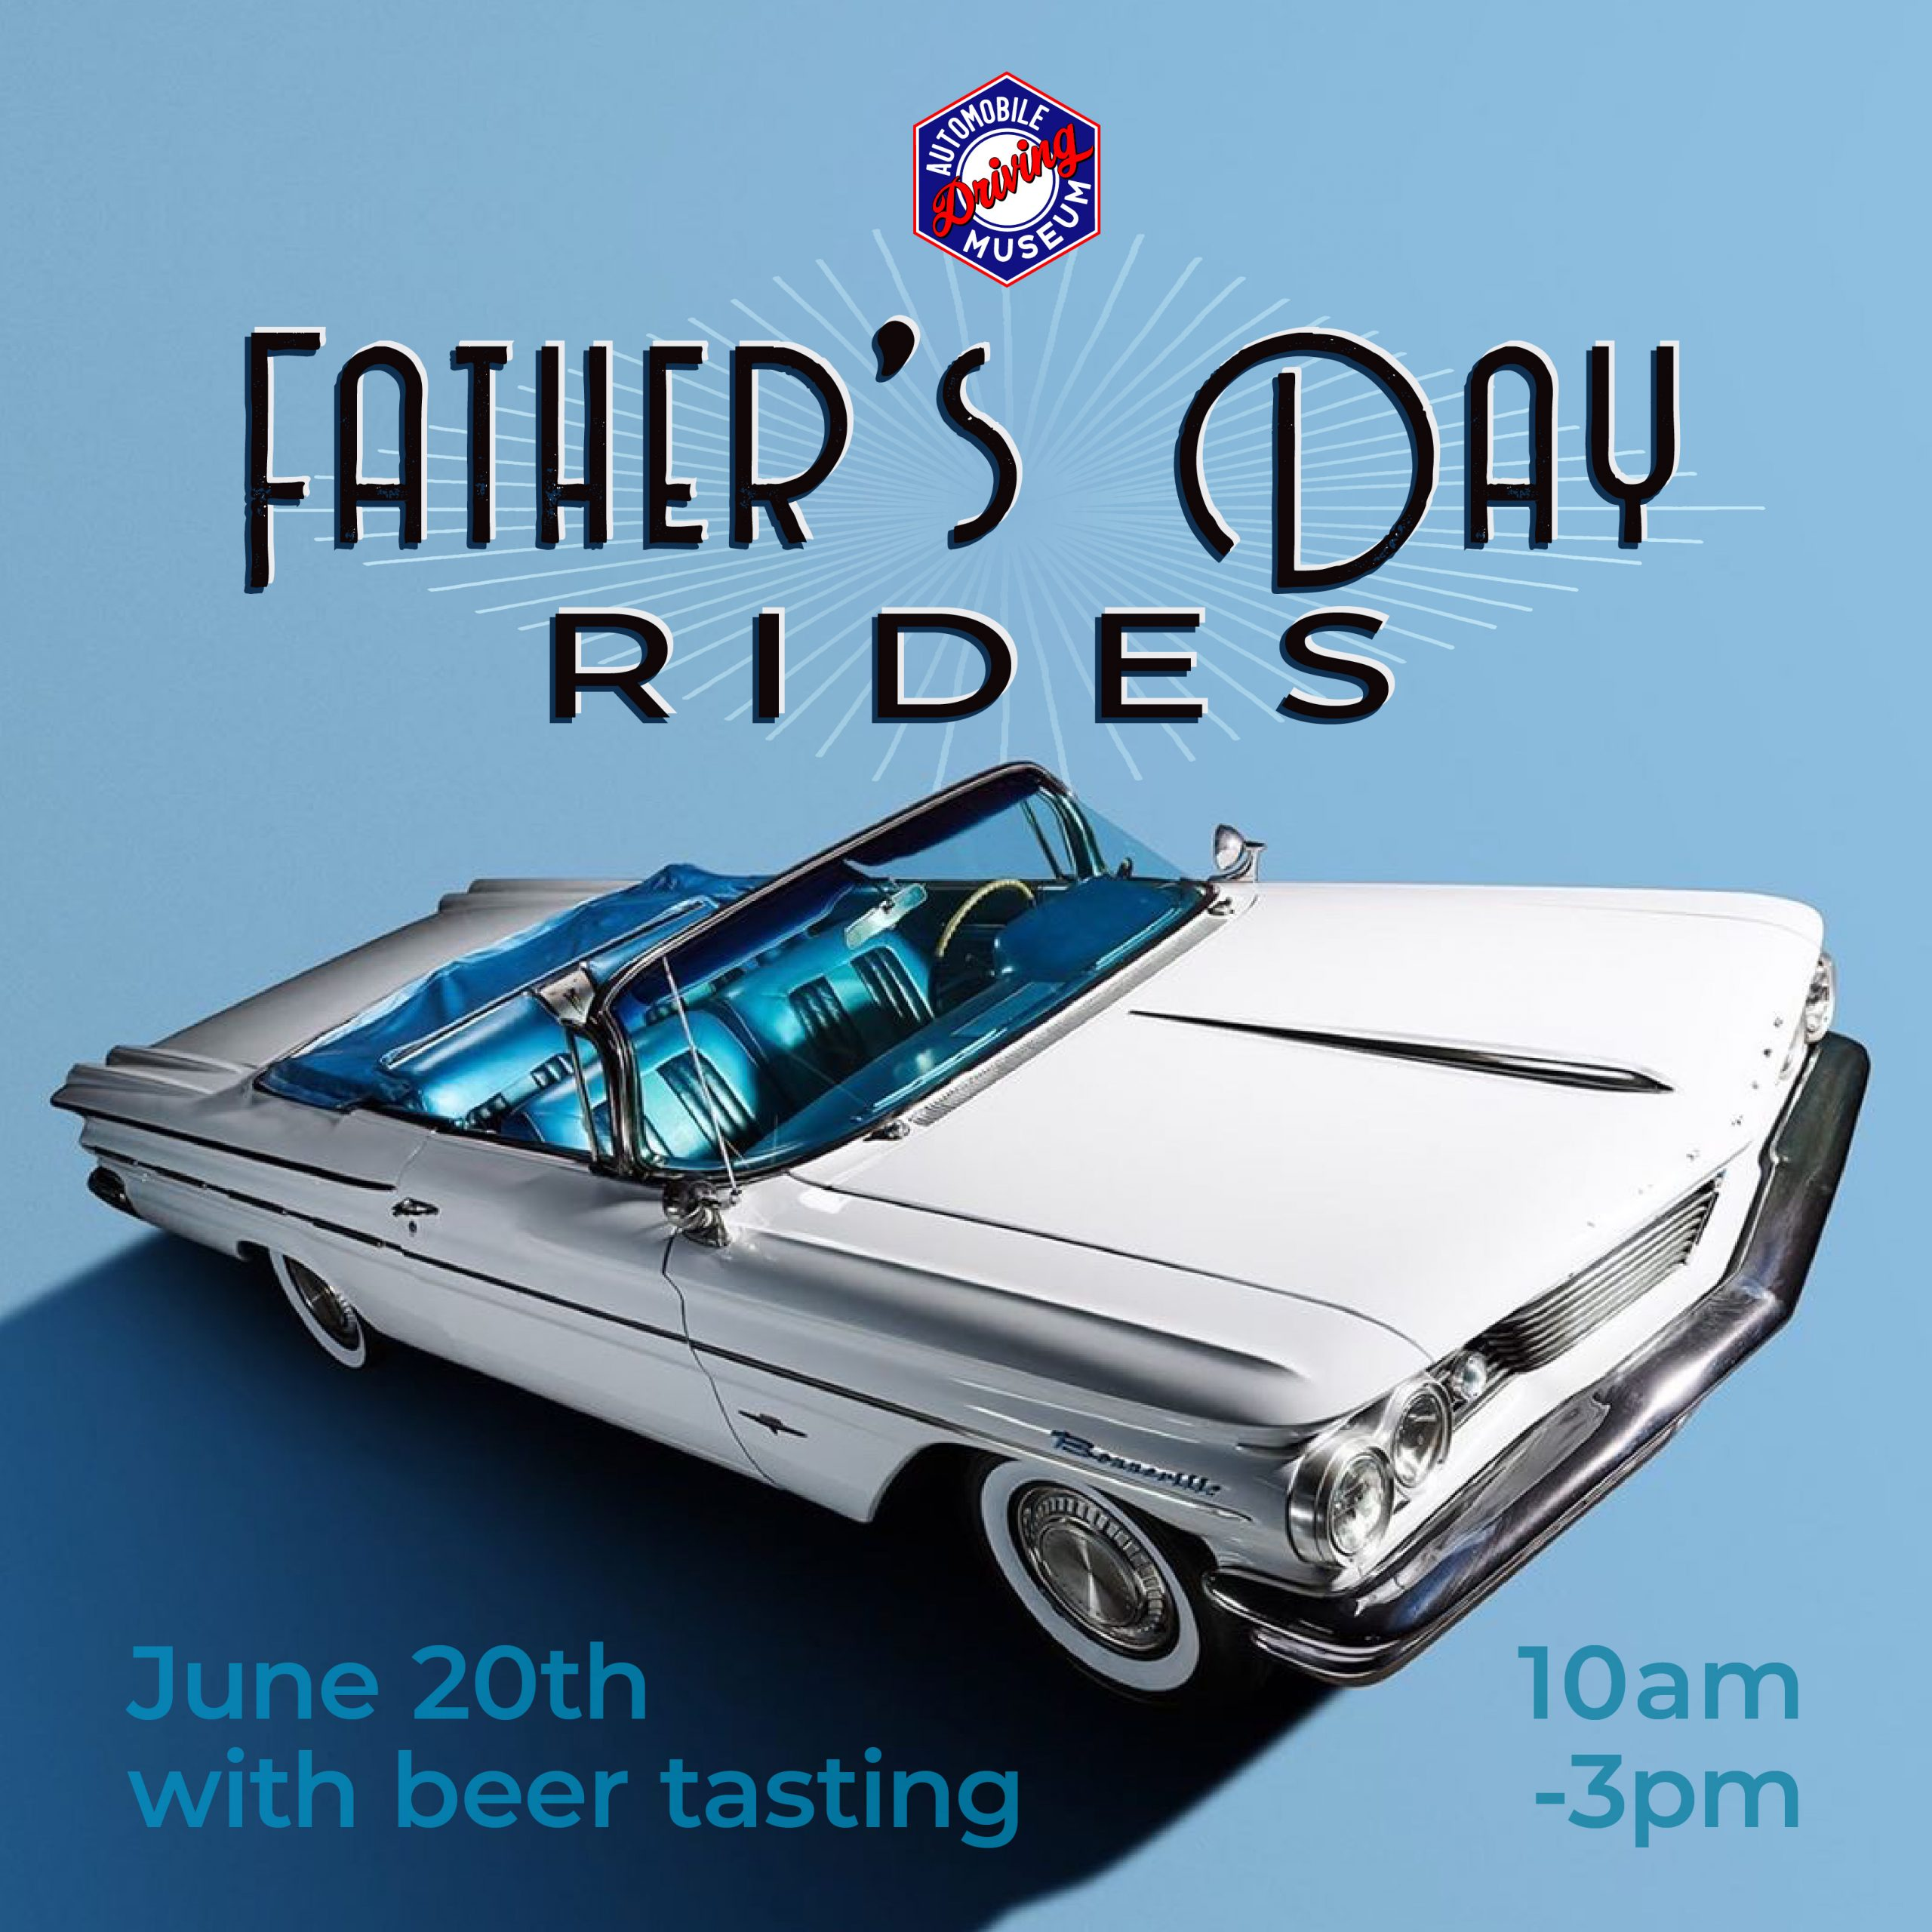 Fathers Day Rides